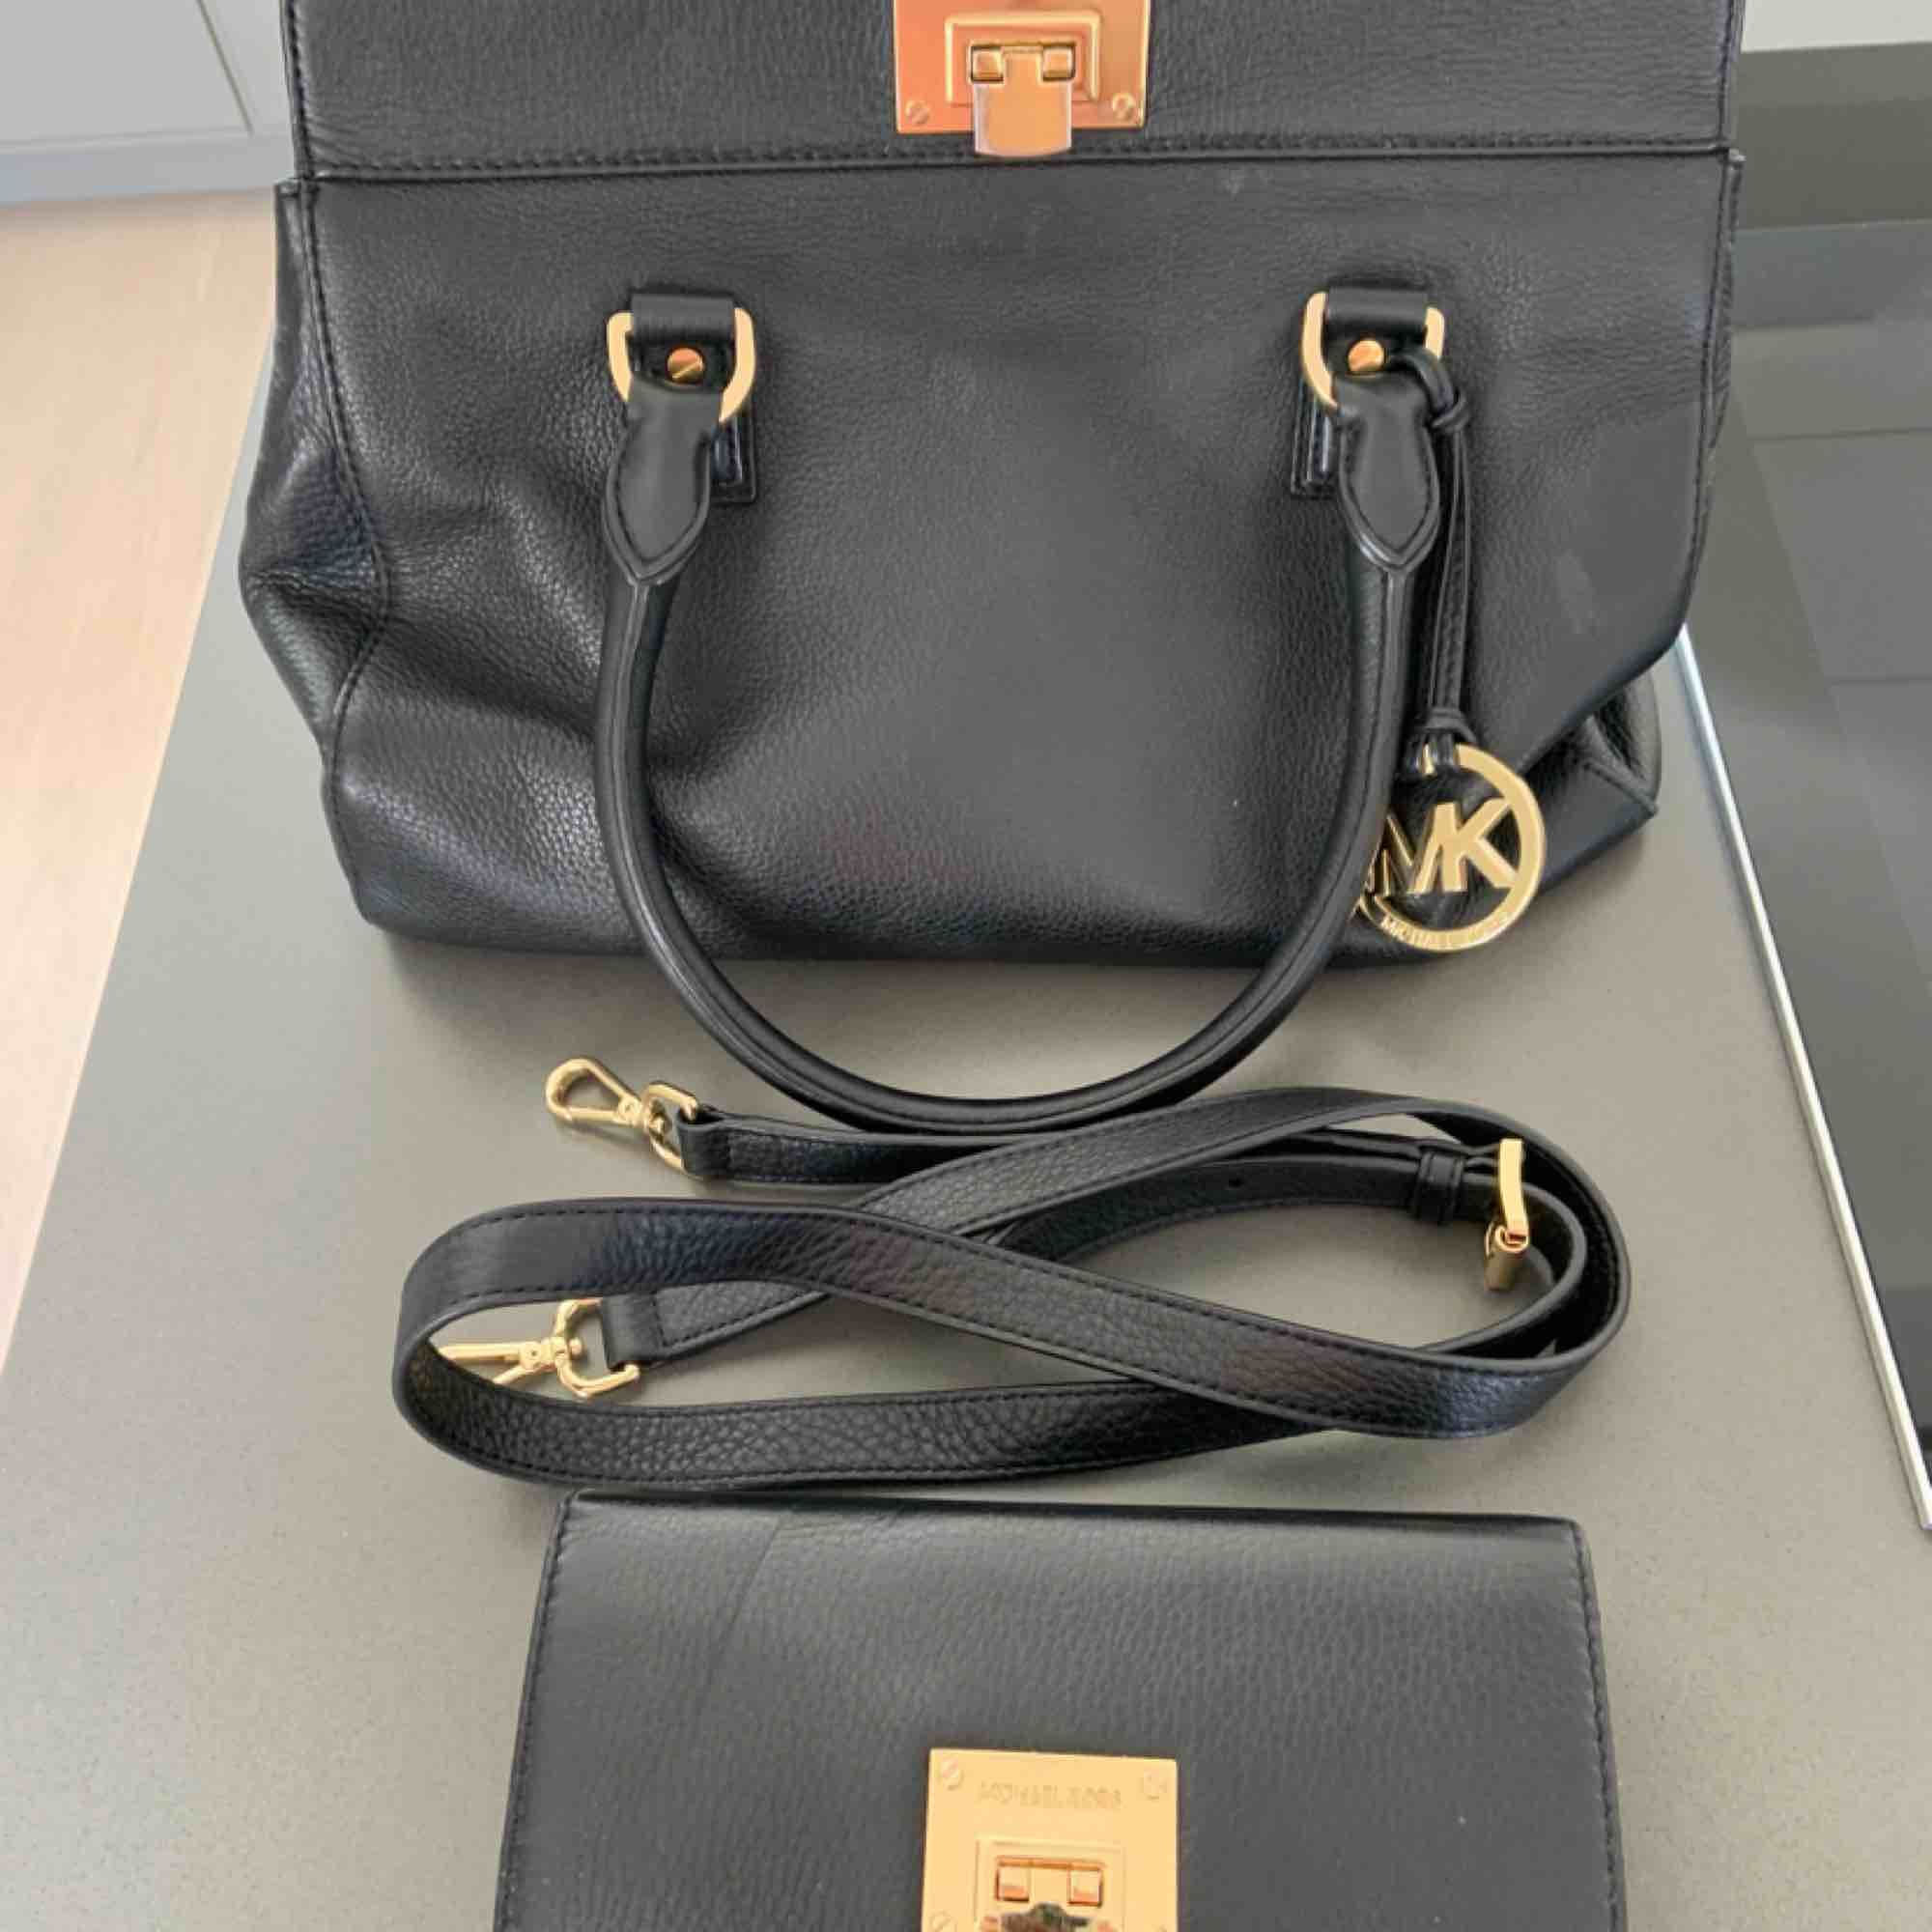 Real MK satchel PLUS matching wallet OBS! Can also be purchased individually! Brand: Michael Kors Colour: Black  Purchased 2 years ago.  Bag has several inside pockets + a long strap that can be added. Wallet has room for 14 credit cards, coins and bills.. Väskor.